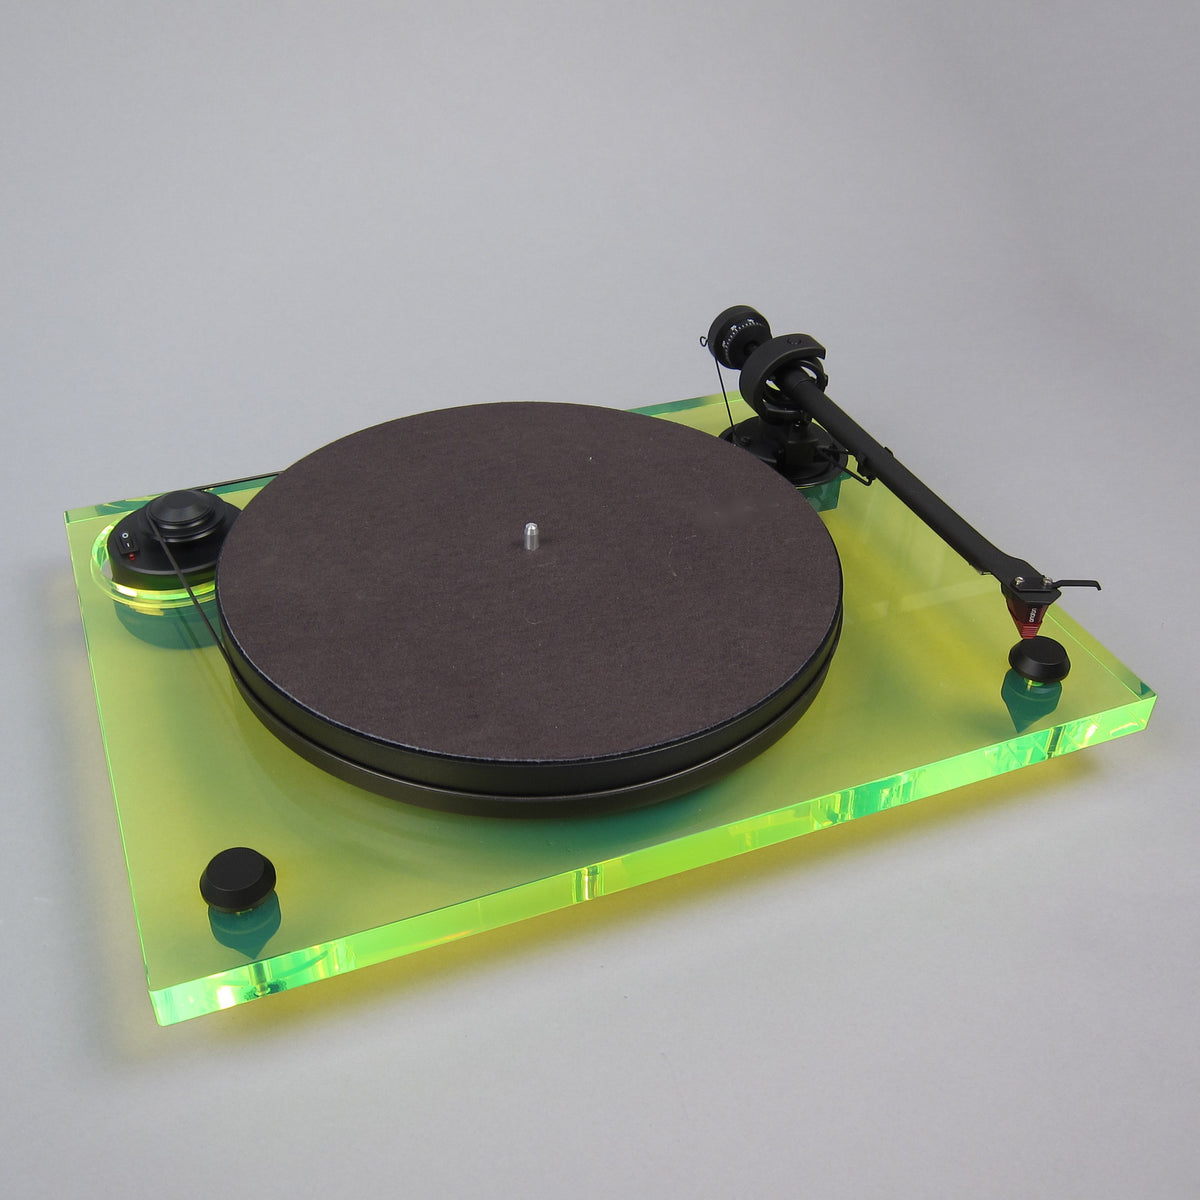 Pro-Ject: 2Xperience Primary Acryl Turntable - Green